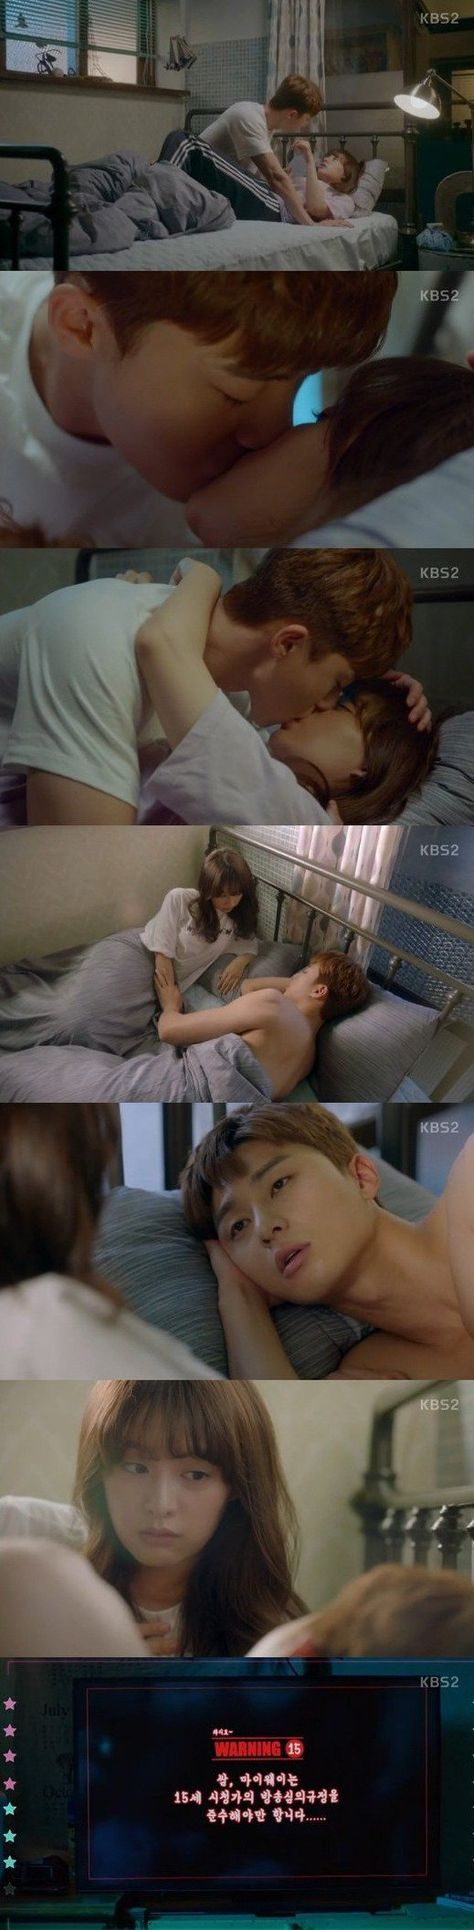 [Spoiler] Added episode 14 captures for the Korean drama 'Fight My Way'